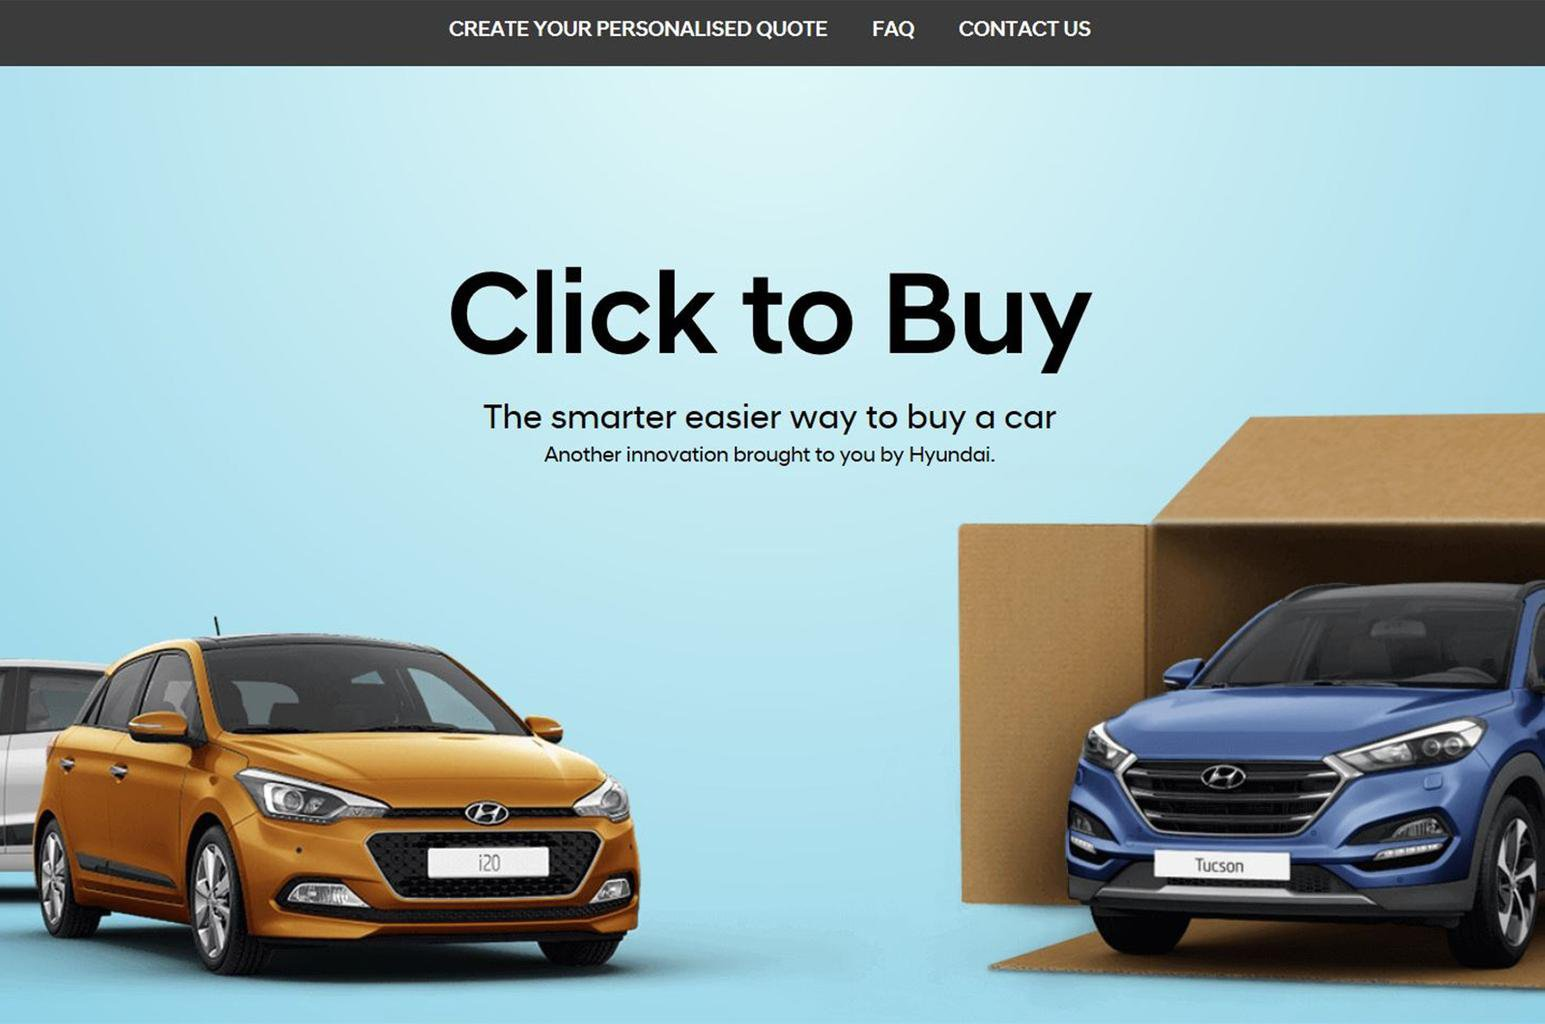 Buy any Hyundai model online at a fixed discount